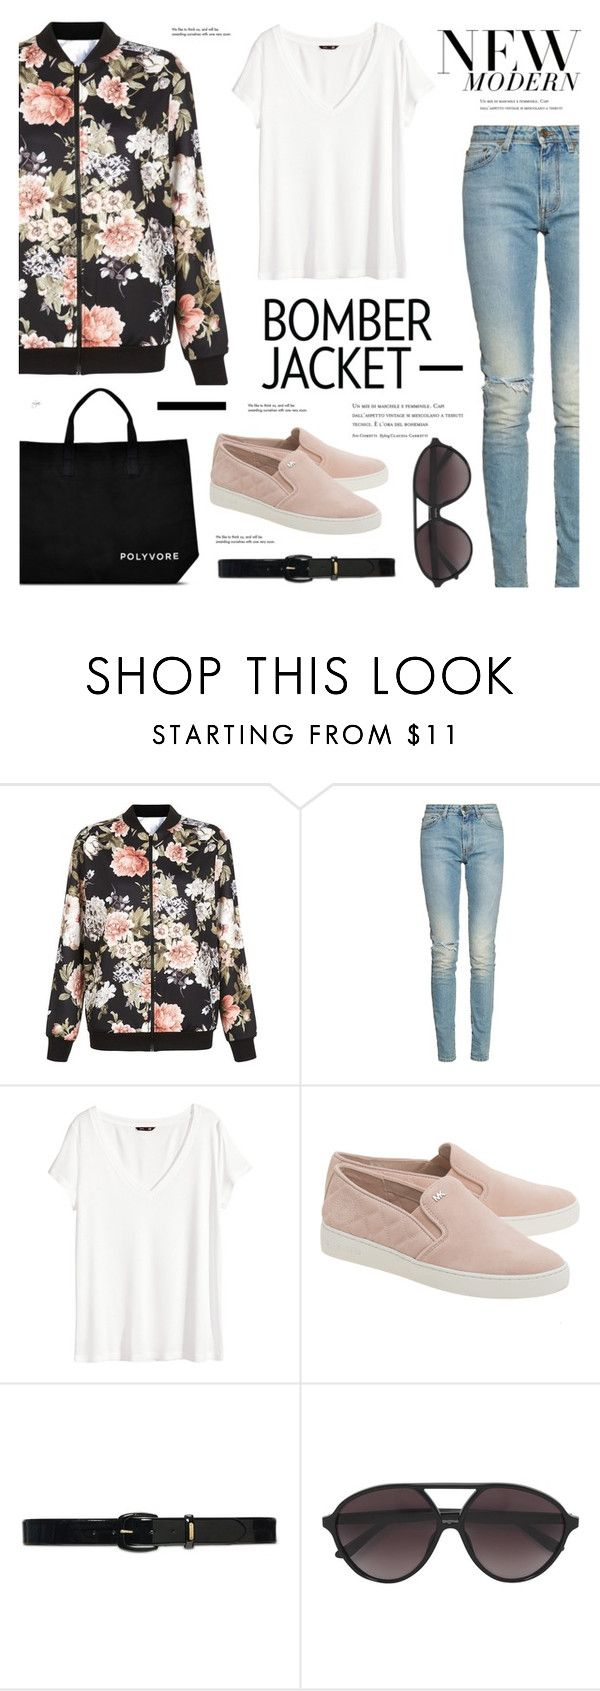 """Floral Bomber jacket-street style"" by cly88 ❤ liked on Polyvore featuring Cameo Rose, Yves Saint Laurent, H&M, MICHAEL Michael Kors, Lauren Ralph Lauren, Valentino, Tiffany & Co., women's clothing, women and female"